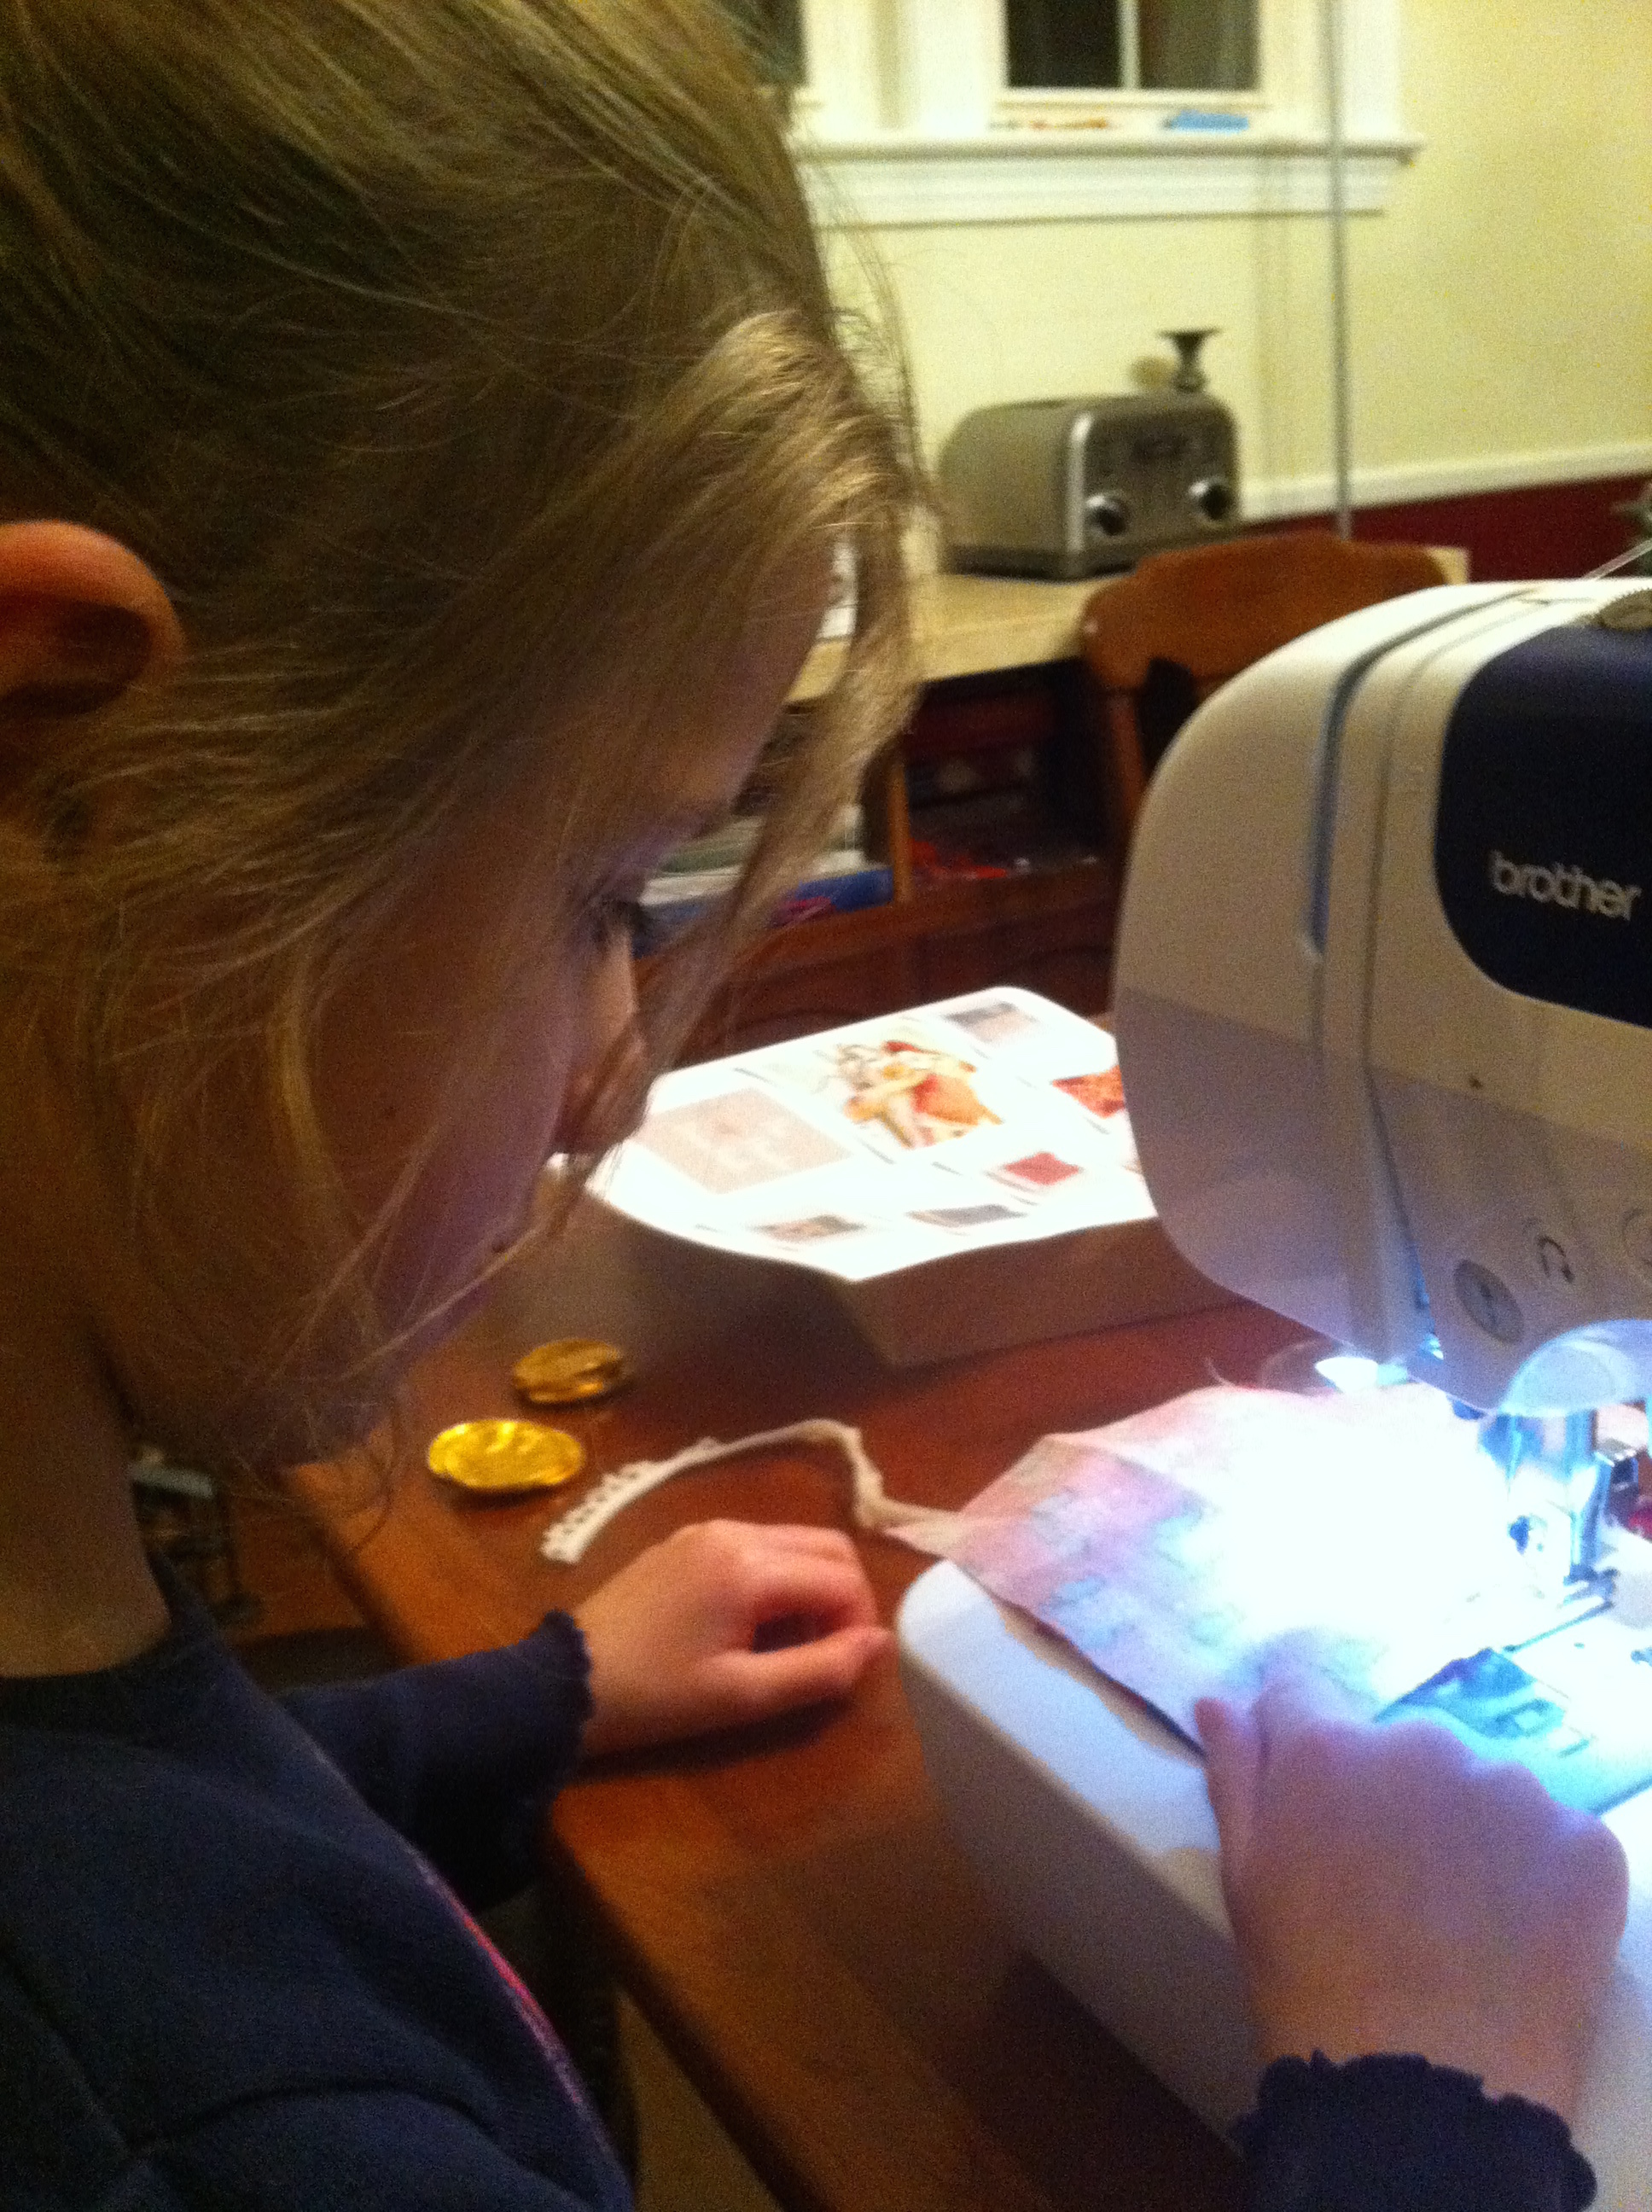 Trying the sewing machine